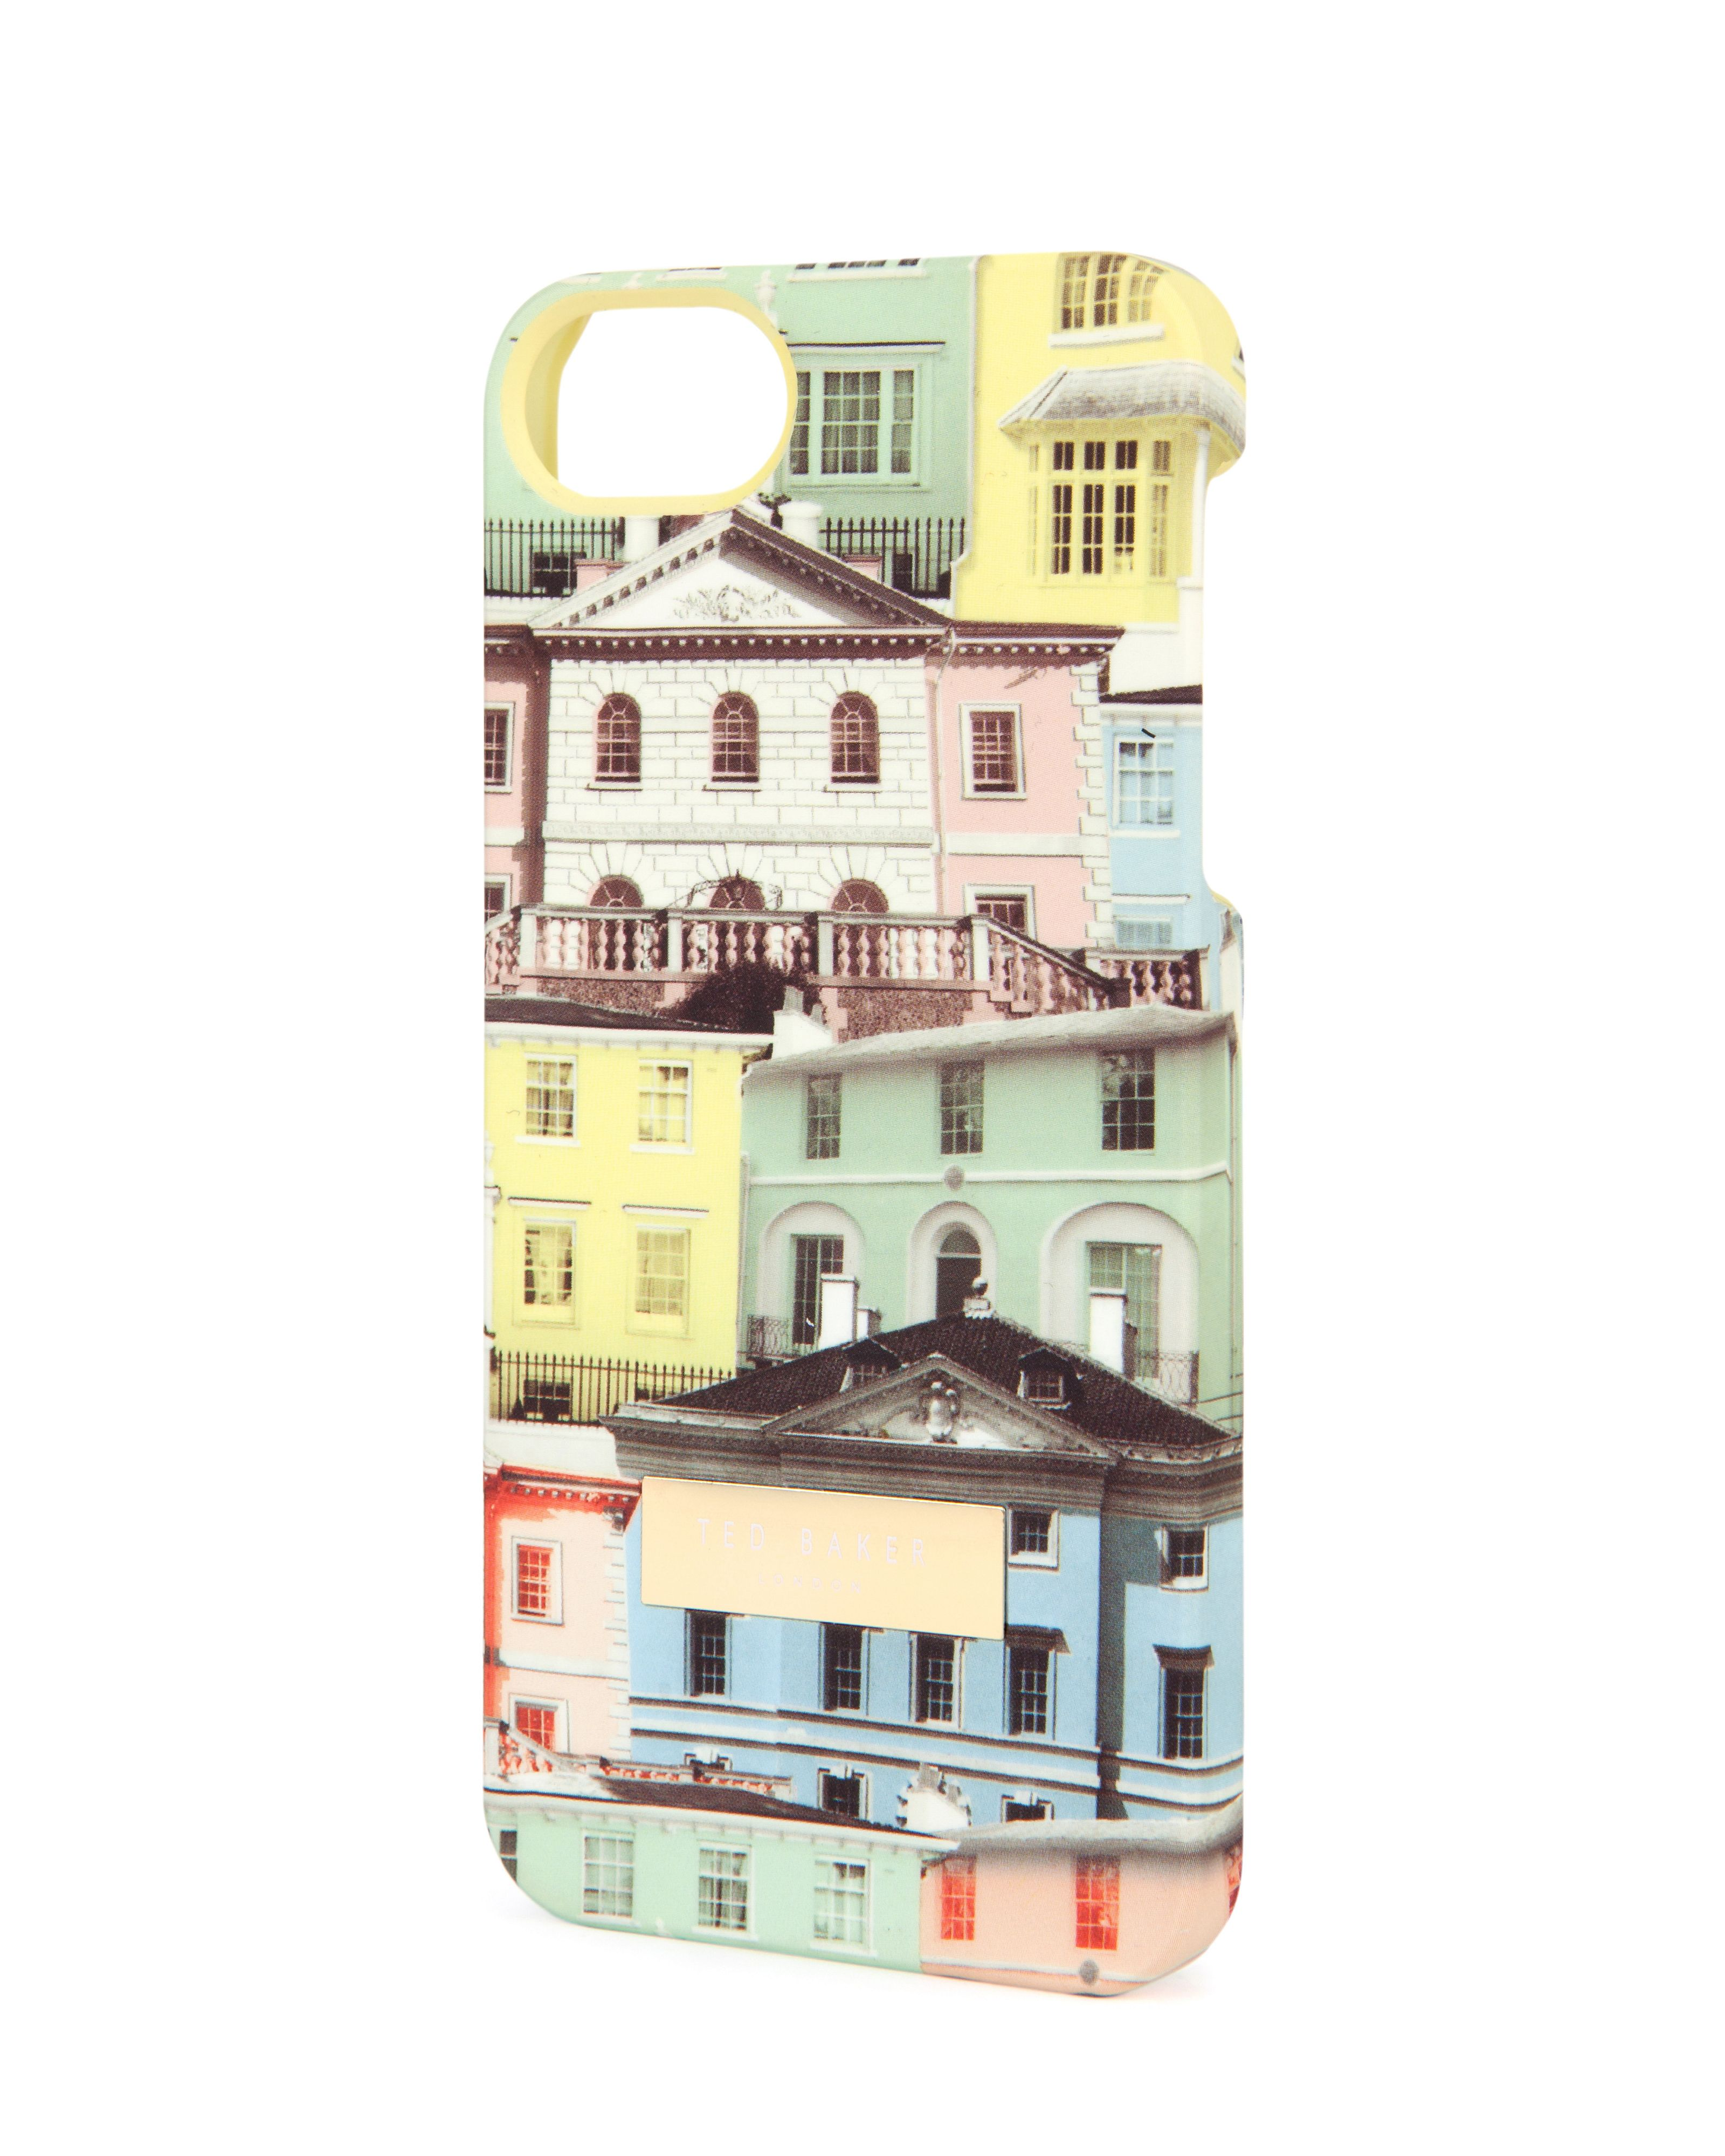 Silke regency houses iphone case